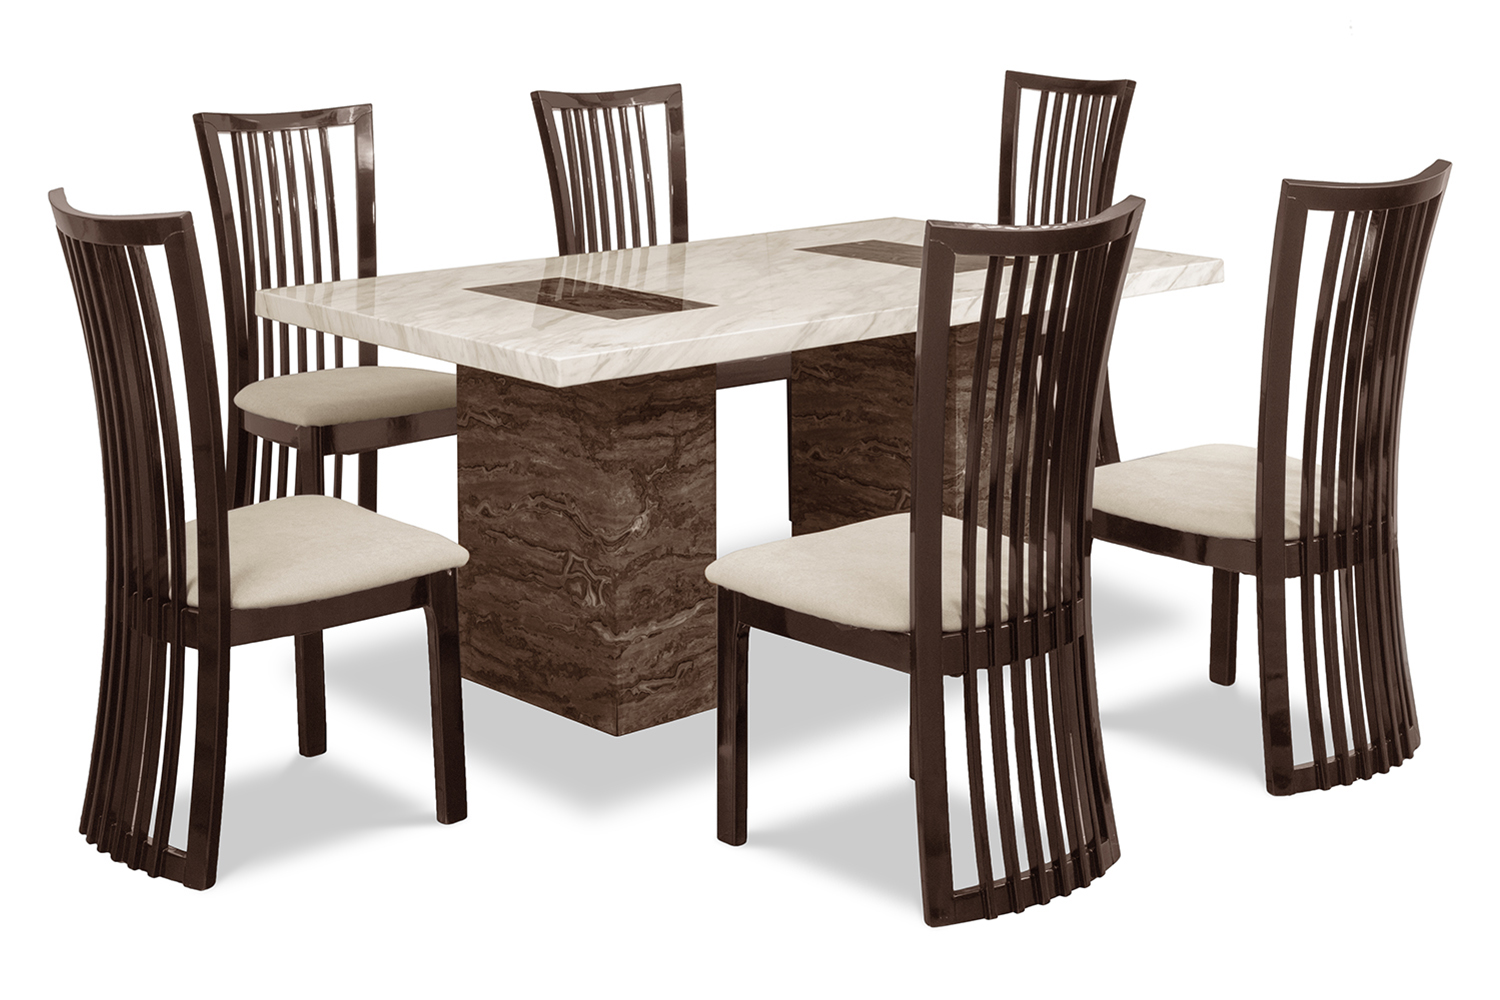 PADDED TABLE PROTECTOR Available in Cream and Brown